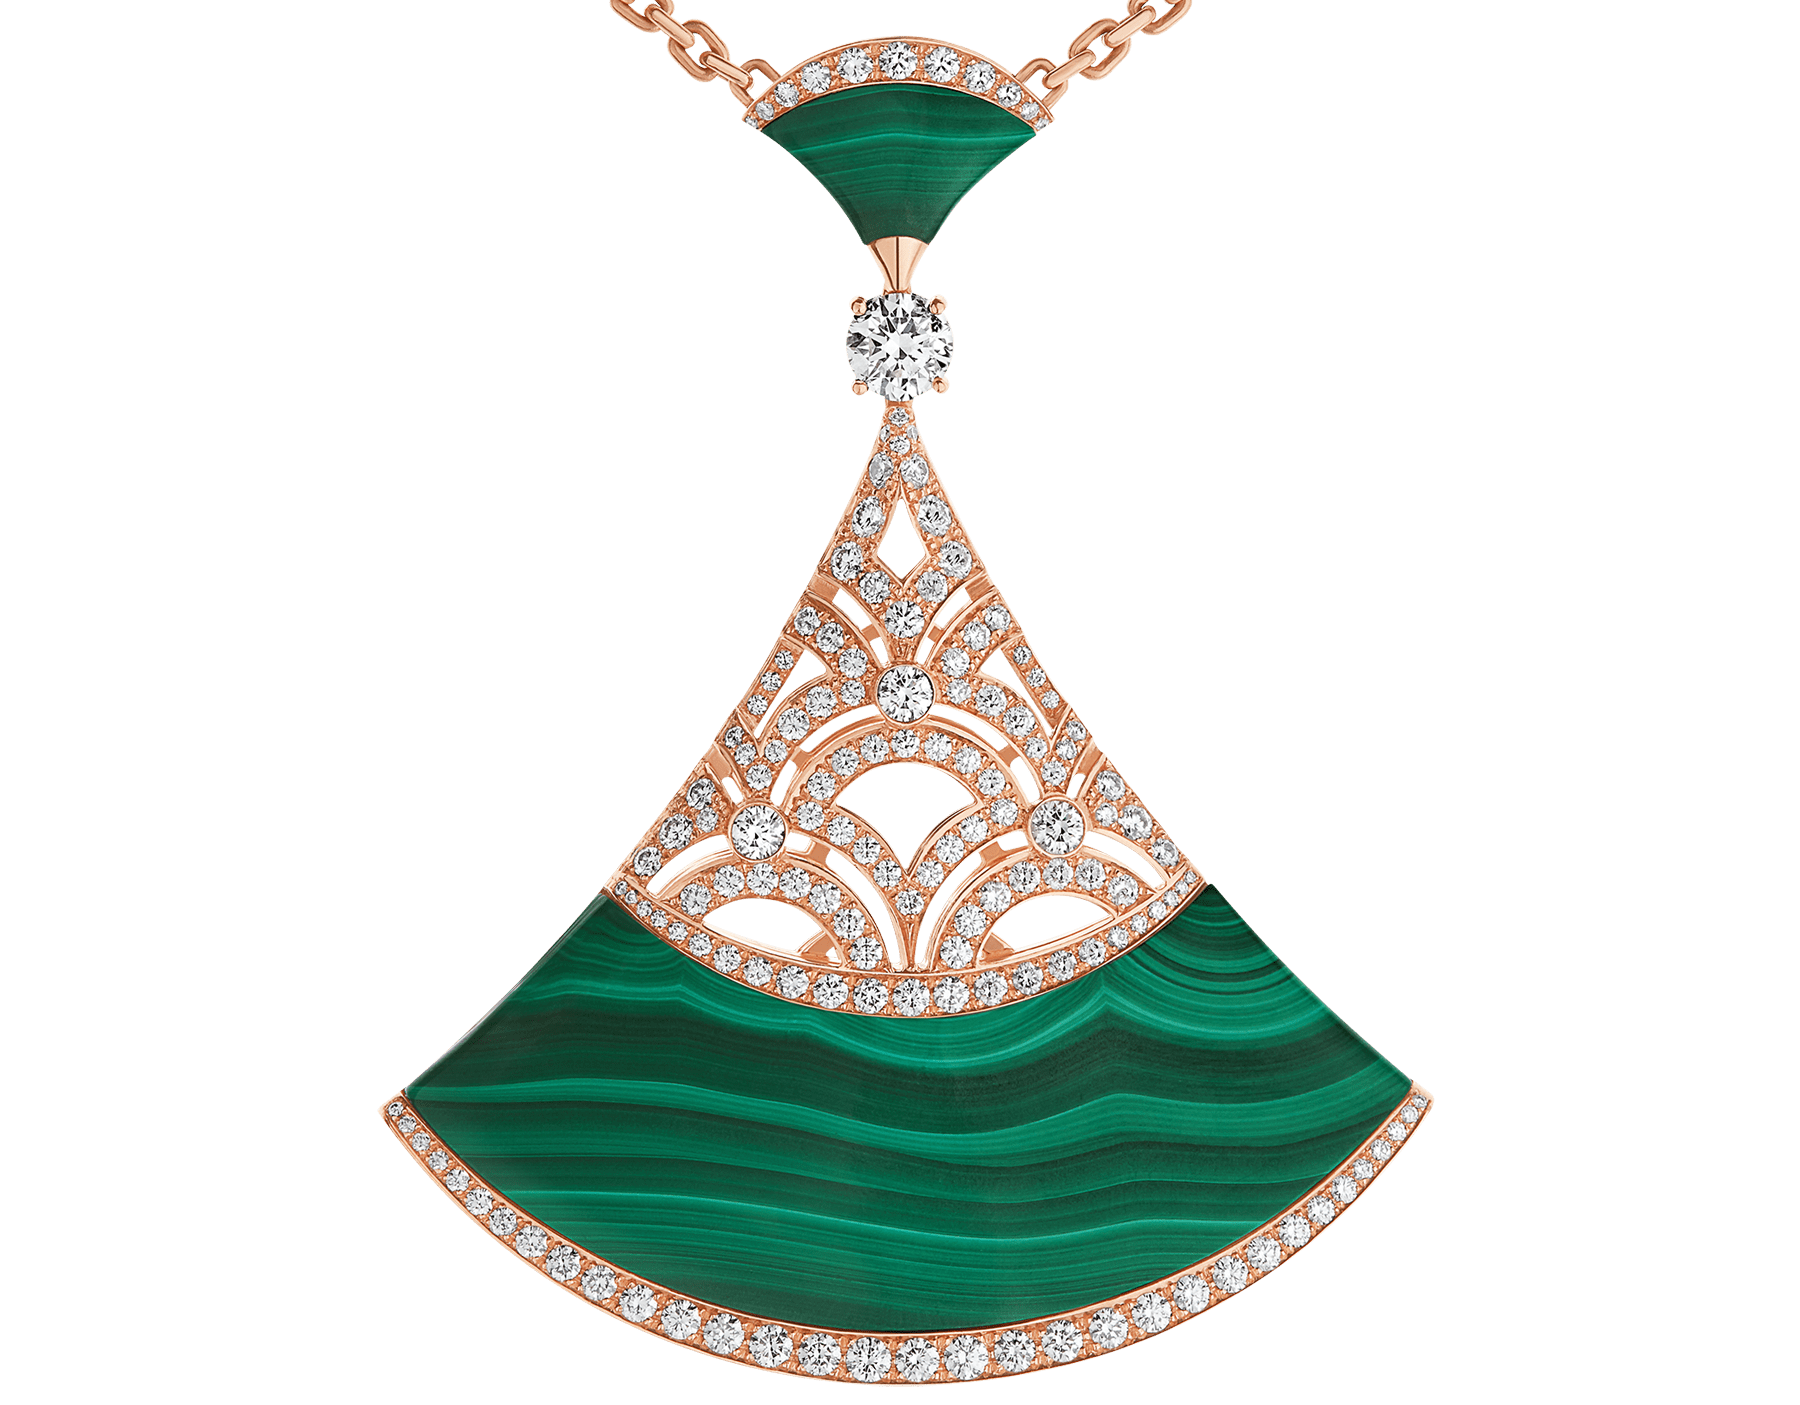 Divas' Dream necklace with 18 kt rose gold chain set with malachite beads and diamonds, and 18 kt rose gold openwork pendant set with a diamond (0.50 ct), pavé diamonds and malachite inserts. Special edition exclusive to Middle East 358222 image 3